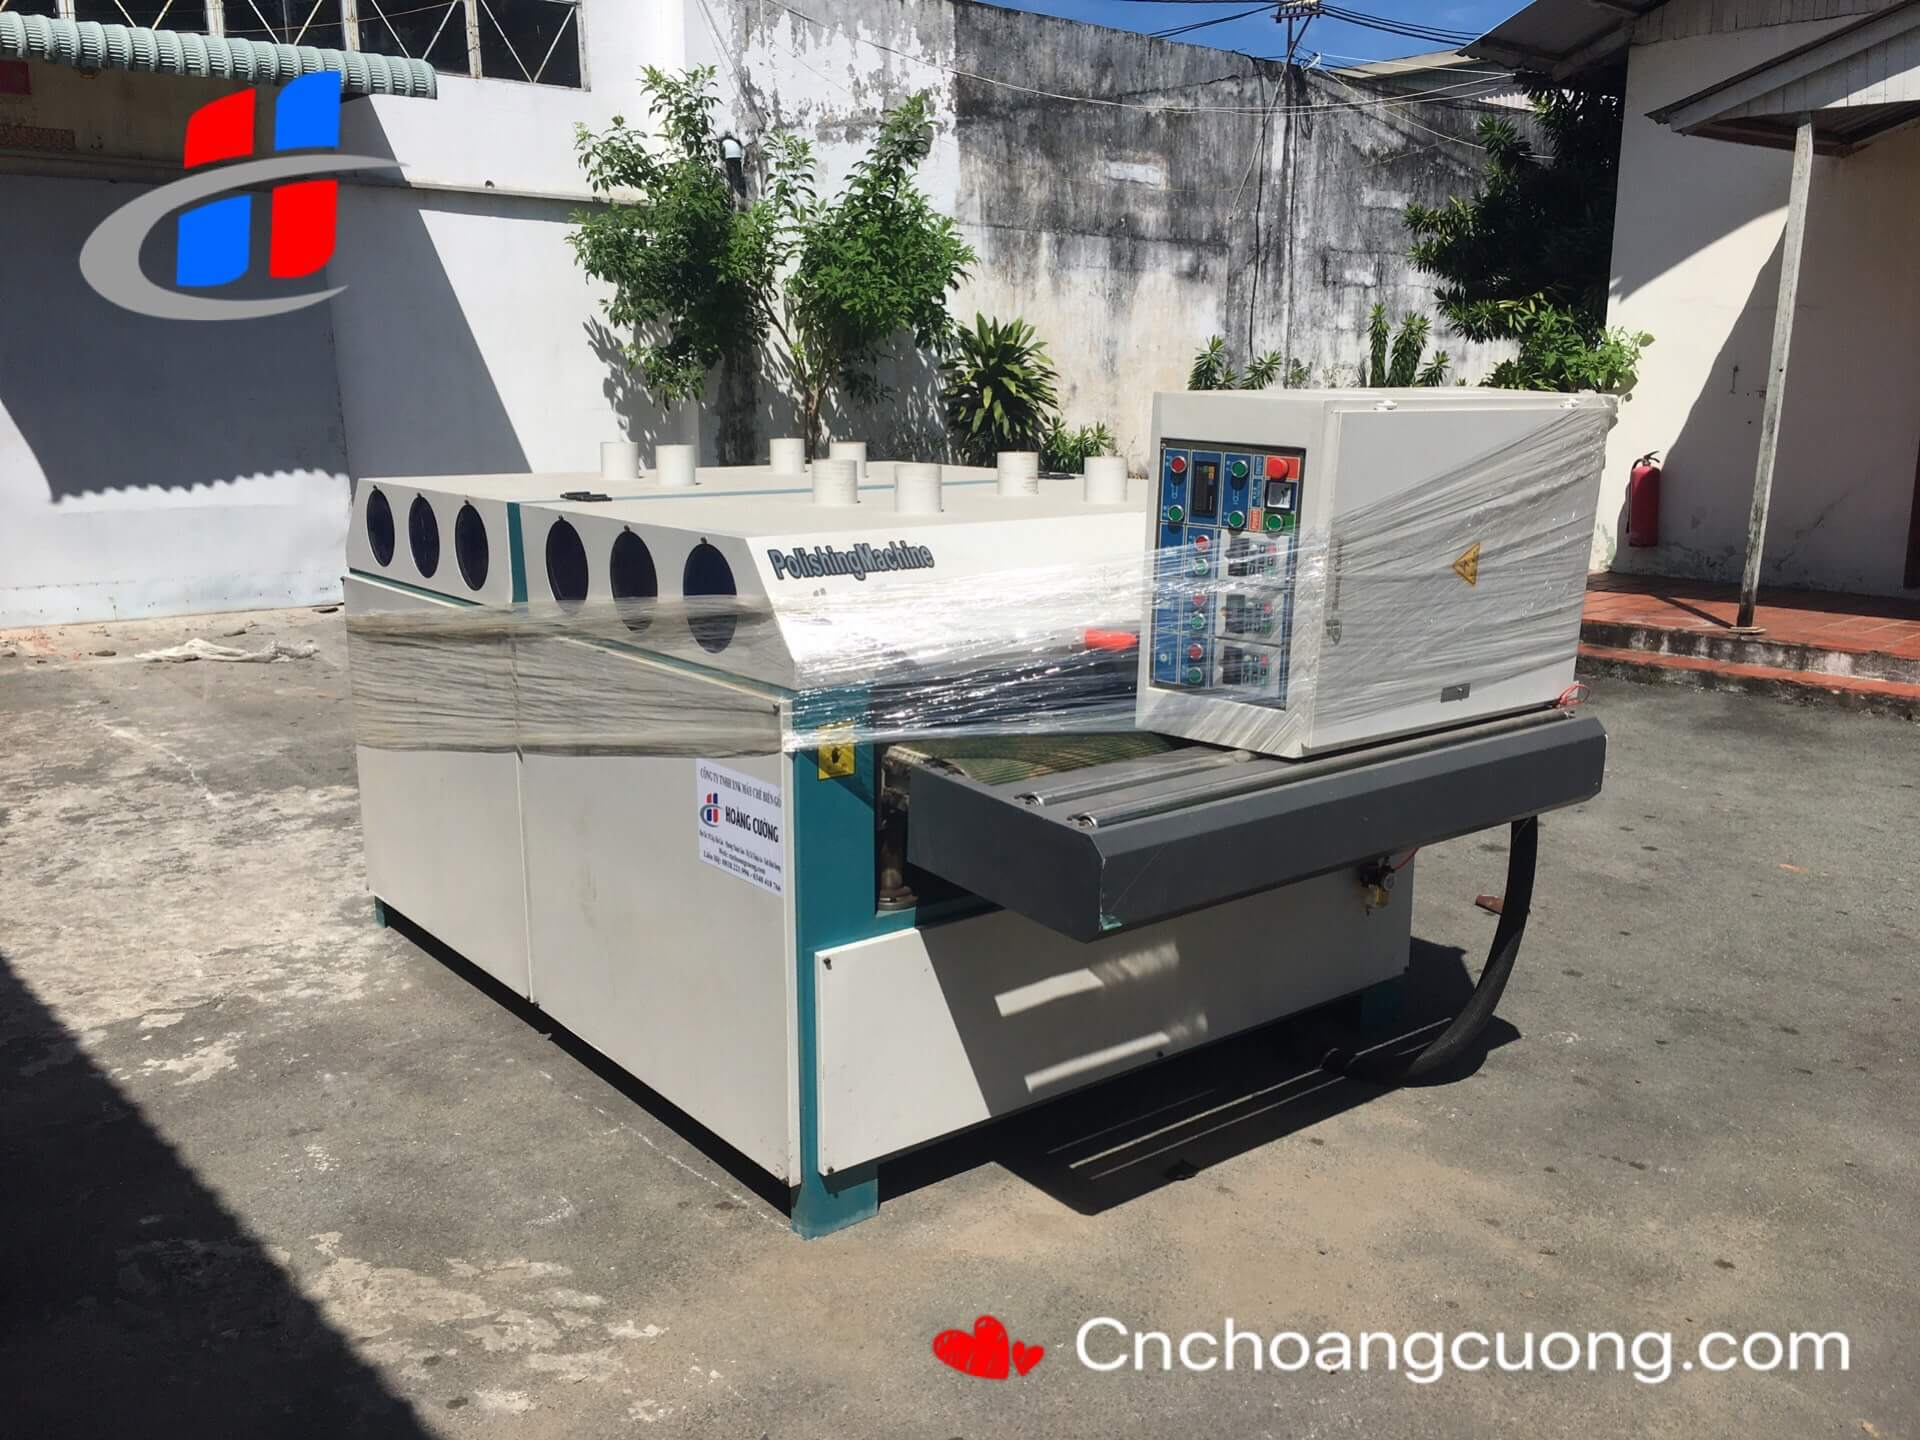 https://cnchoangcuong.com/?post_type=product&p=1730&preview=true